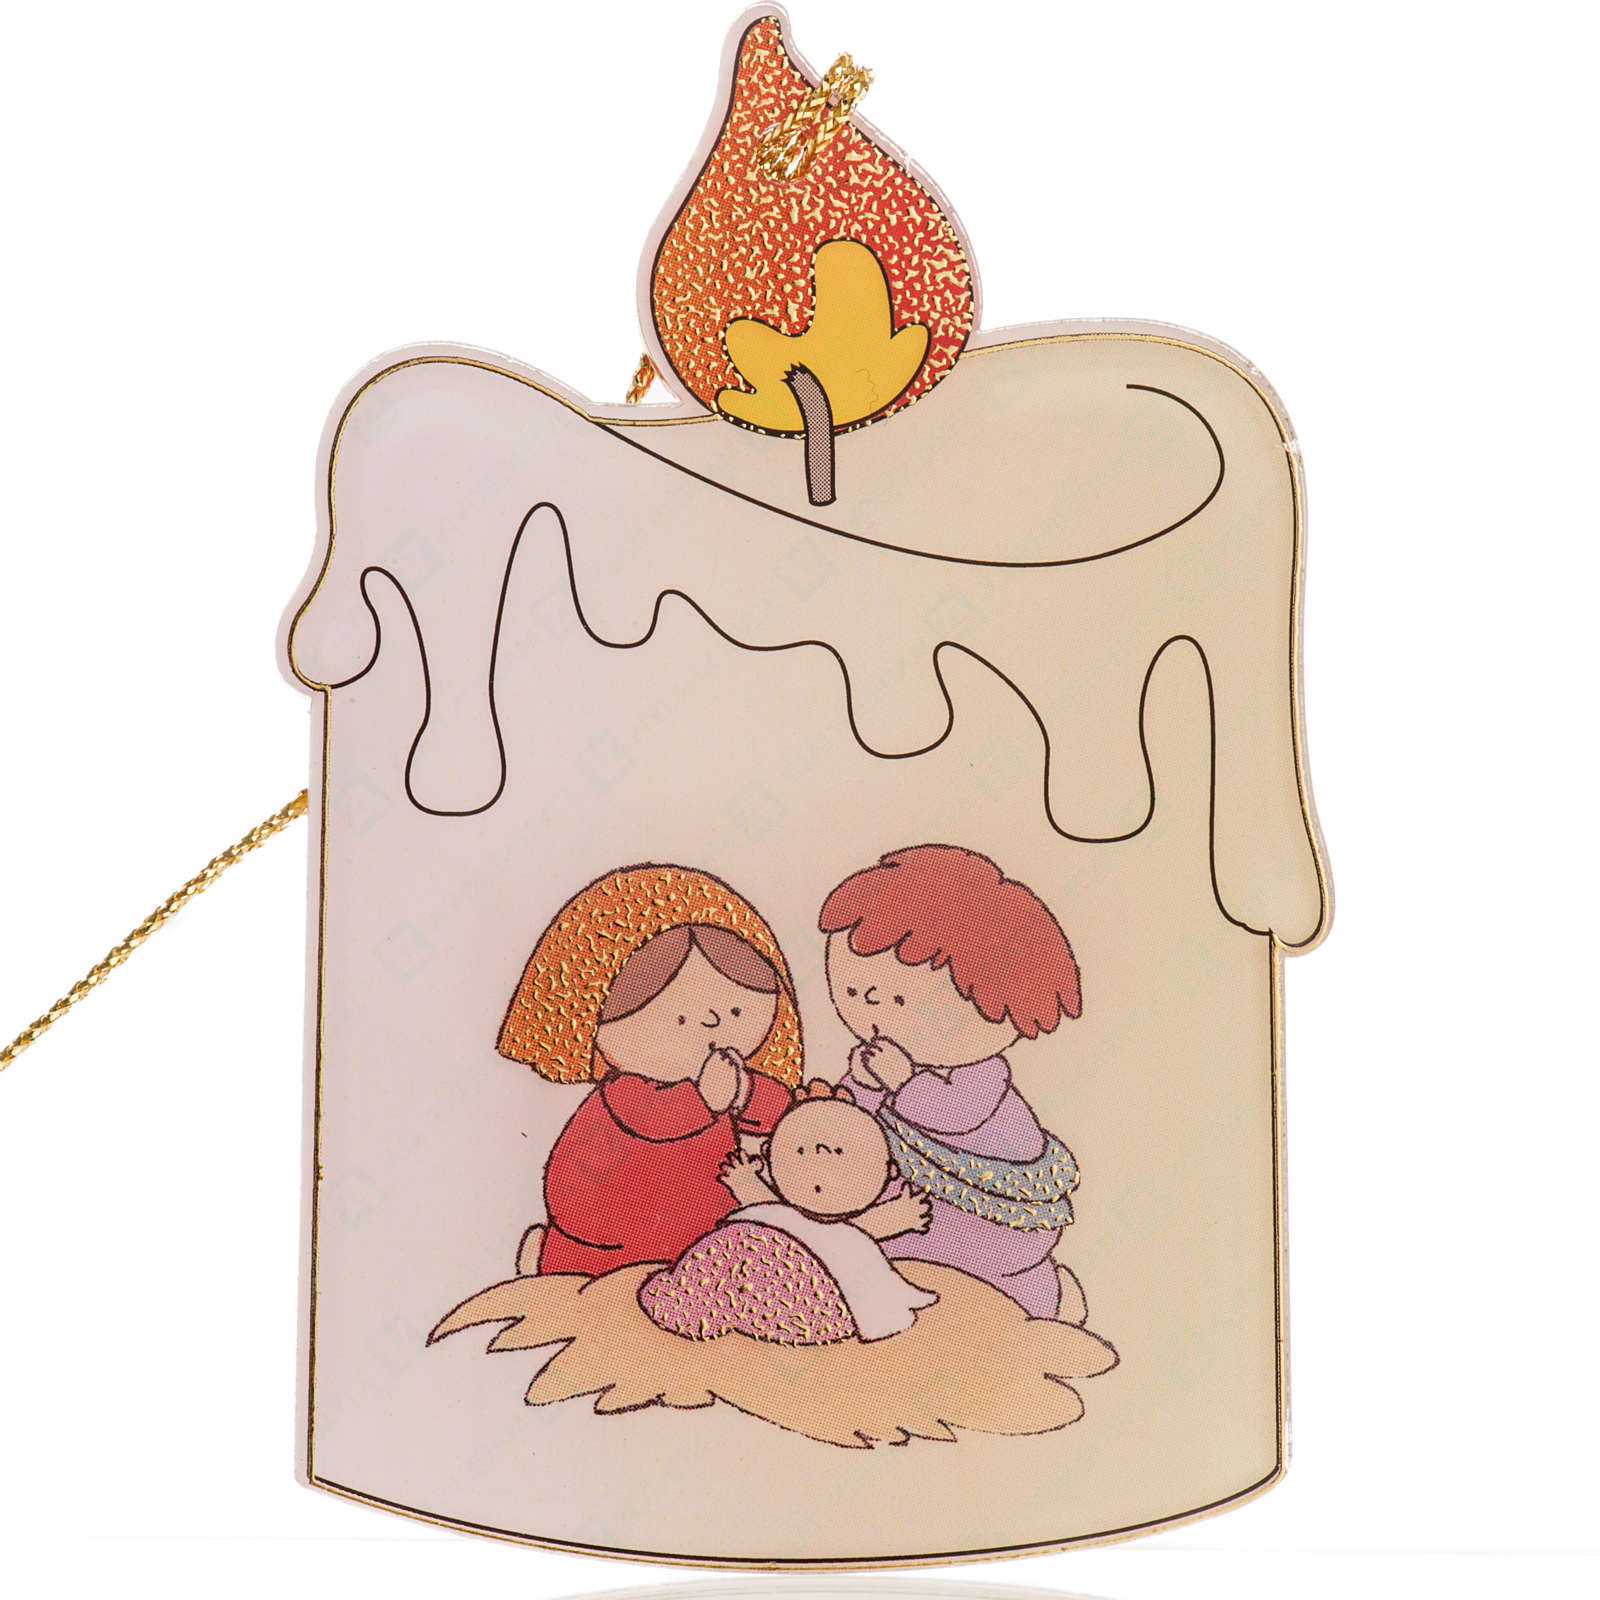 Decoration for the Christmas tree in plexiglass, candle 4